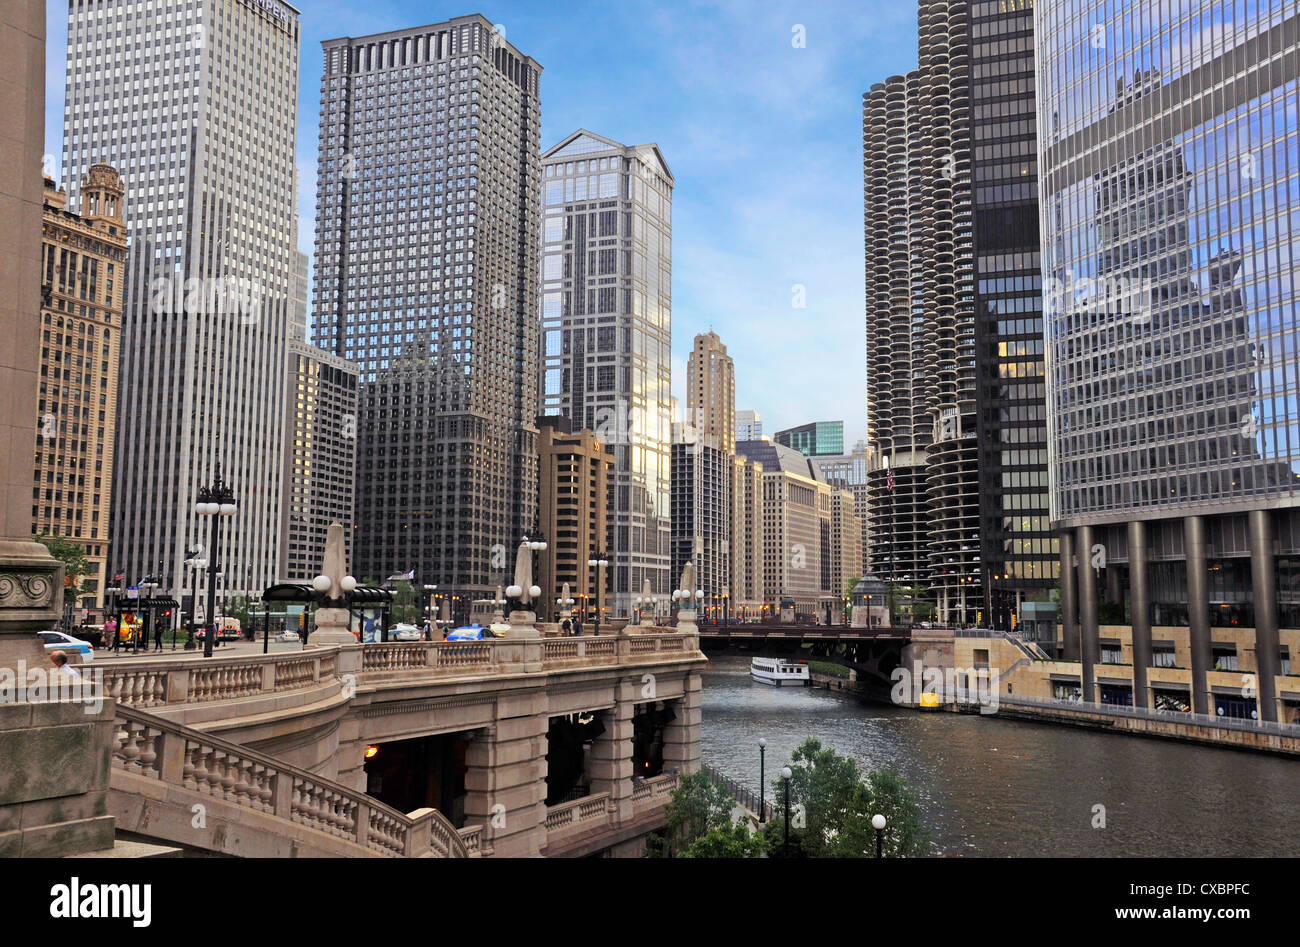 CHICAGO SKYLINE WITH RIVER,ILLINOIS,USA - Stock Image